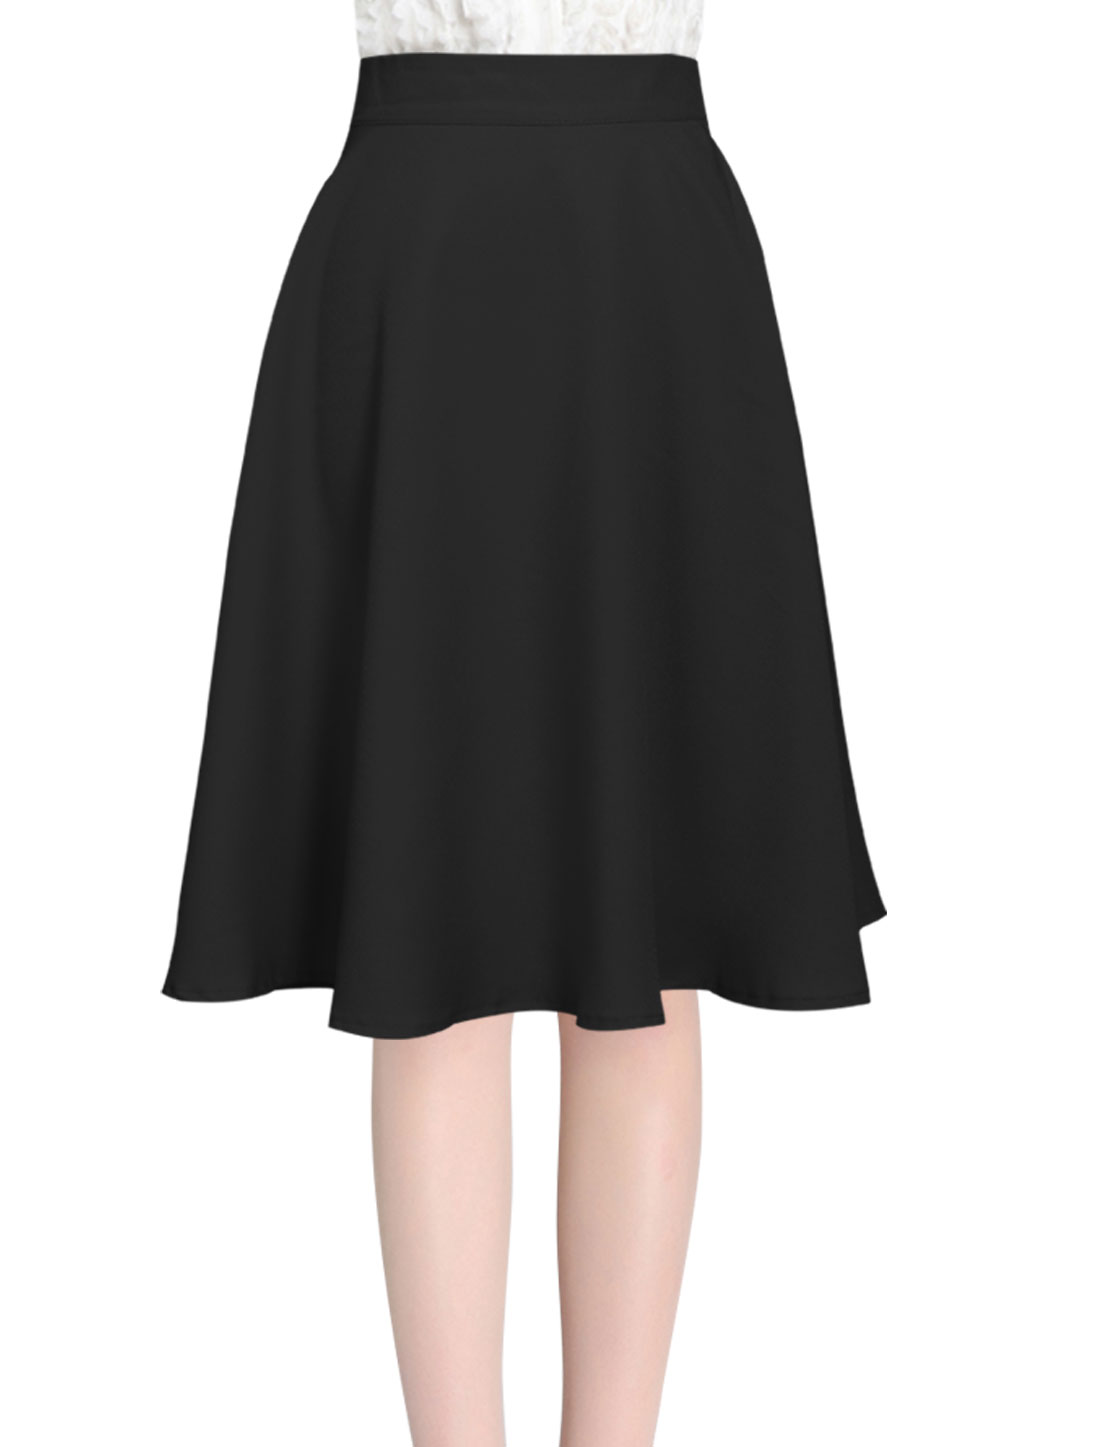 Women Elegant Knee Length Round Hem Unlined Full Skirt Black XL